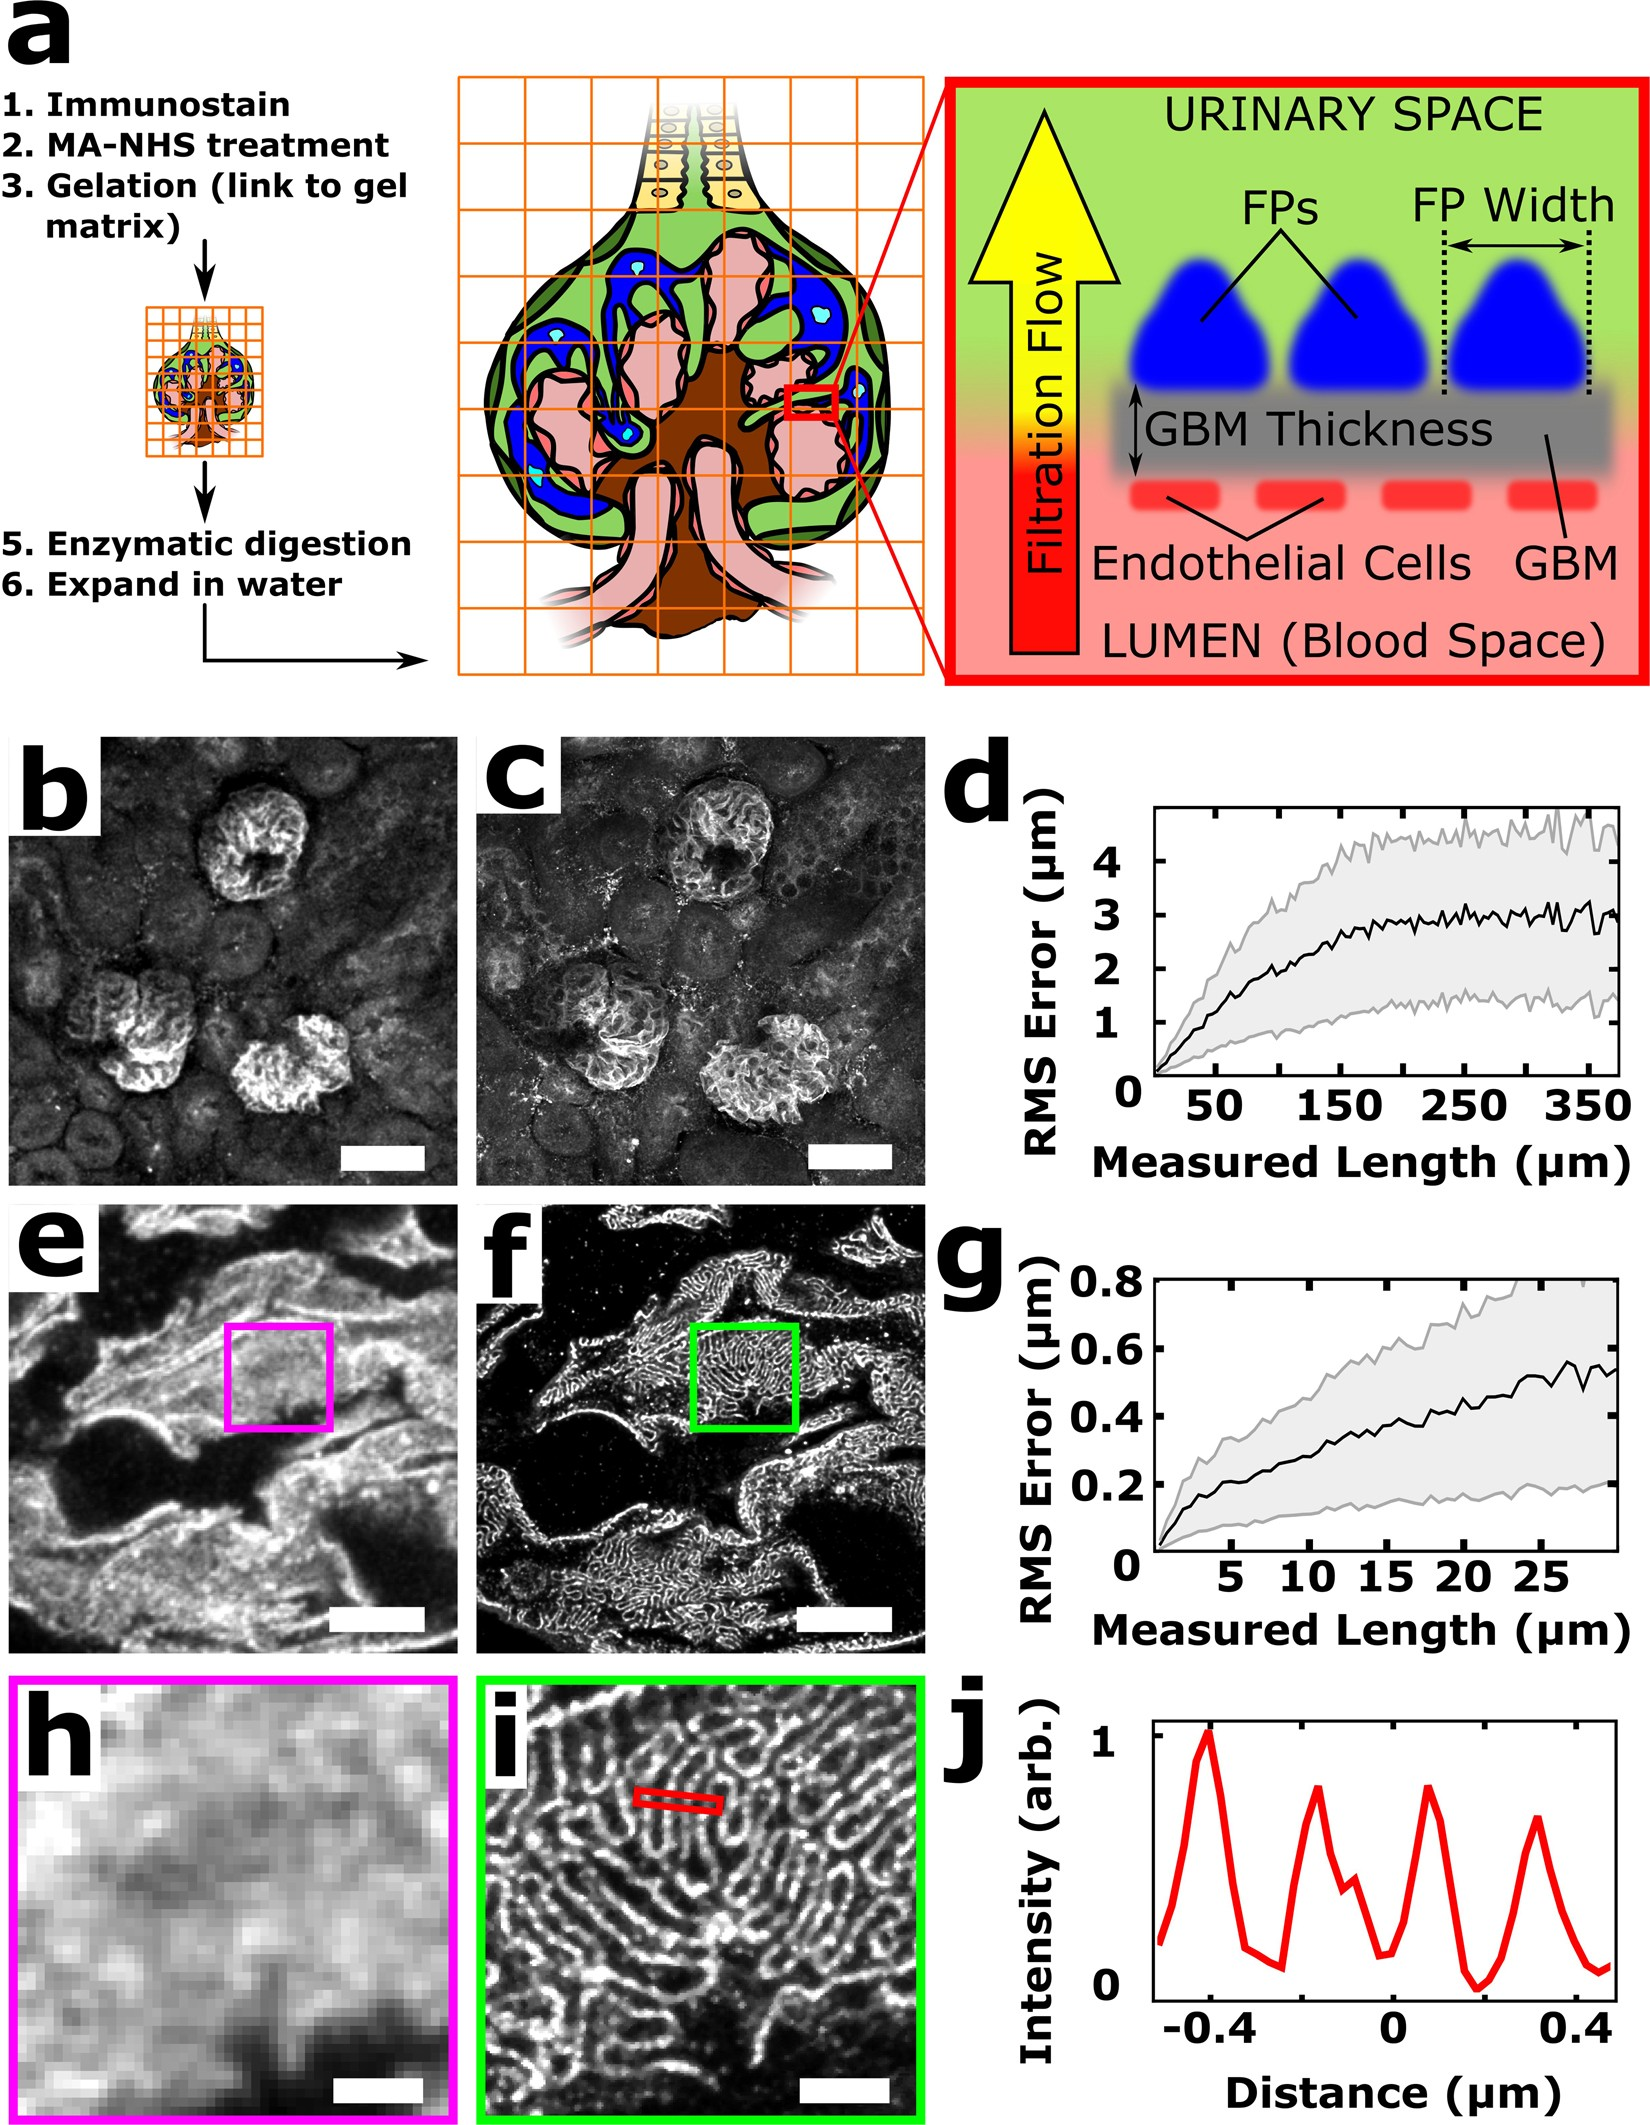 Imaging Approaches Expand View Into >> Volumetric Nanoscale Optical Imaging Of Mouse And Human Kidney Via